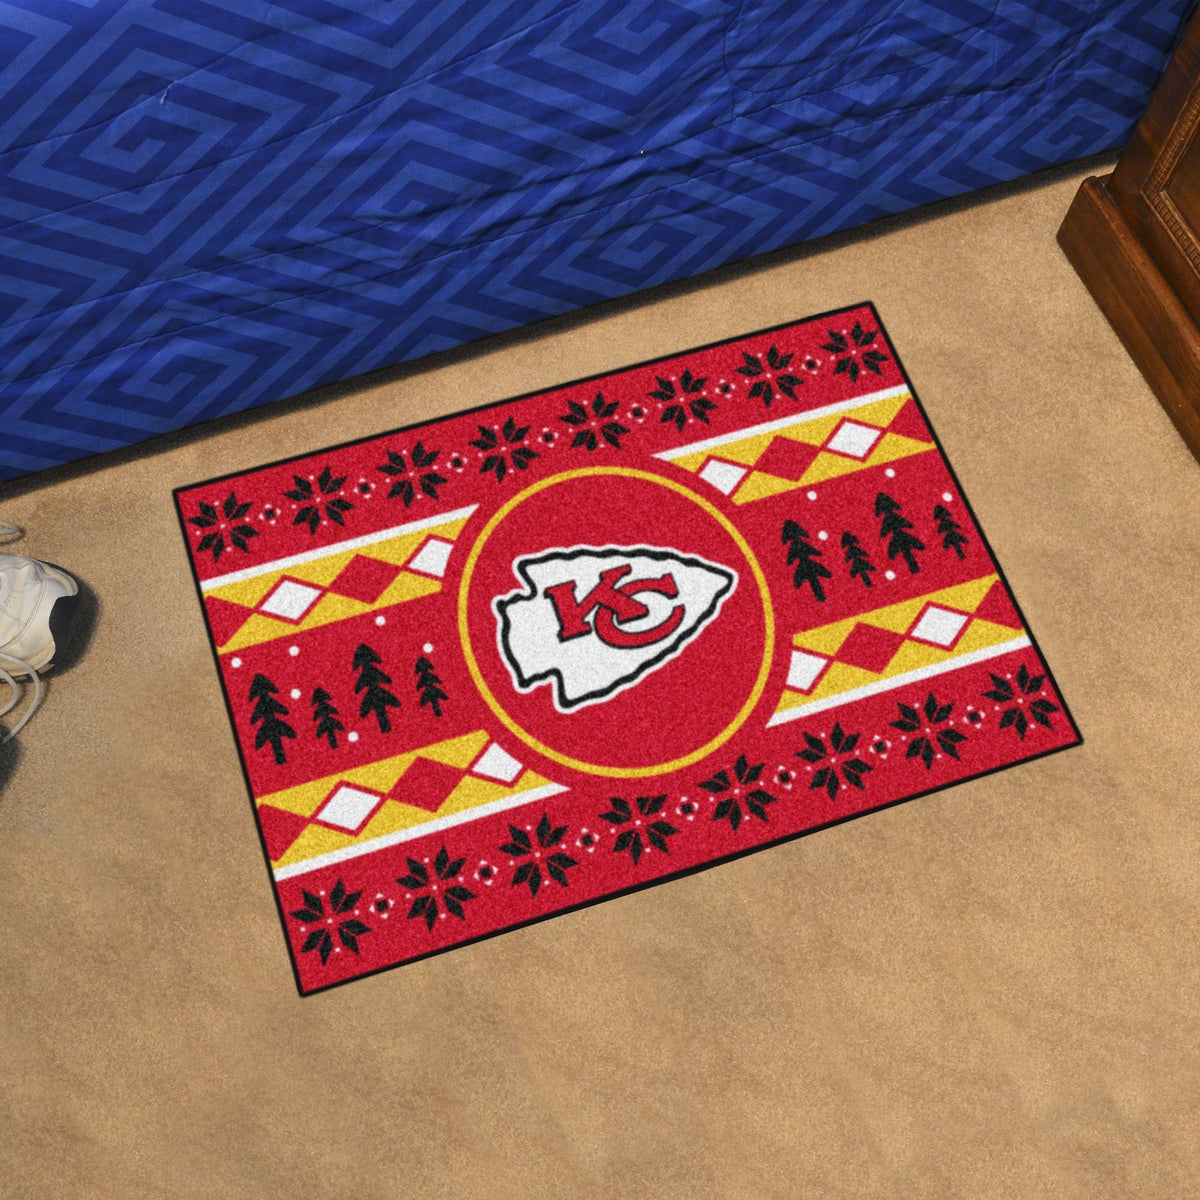 "NFL - Holiday Sweater Starter Mat, 19"" x 30"" NFL Mats, Rectangular Mats, Holiday Sweater Starter Mat, NFL, Home Fan Mats Kansas City Chiefs"